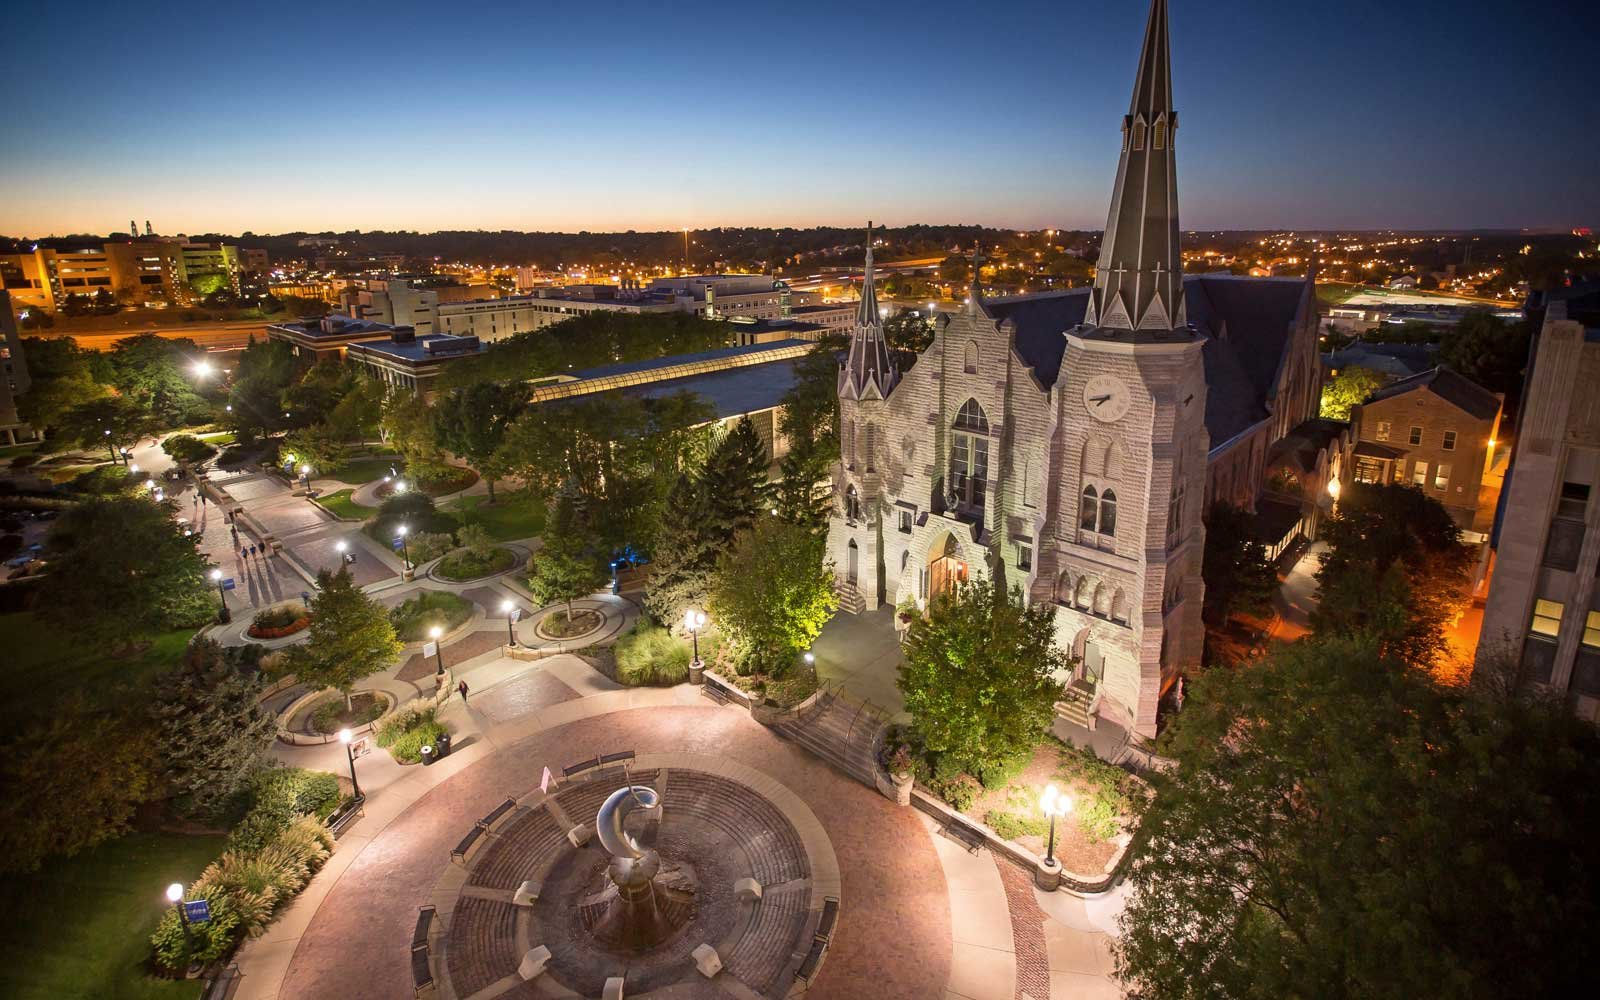 Creighton University in Nebraska